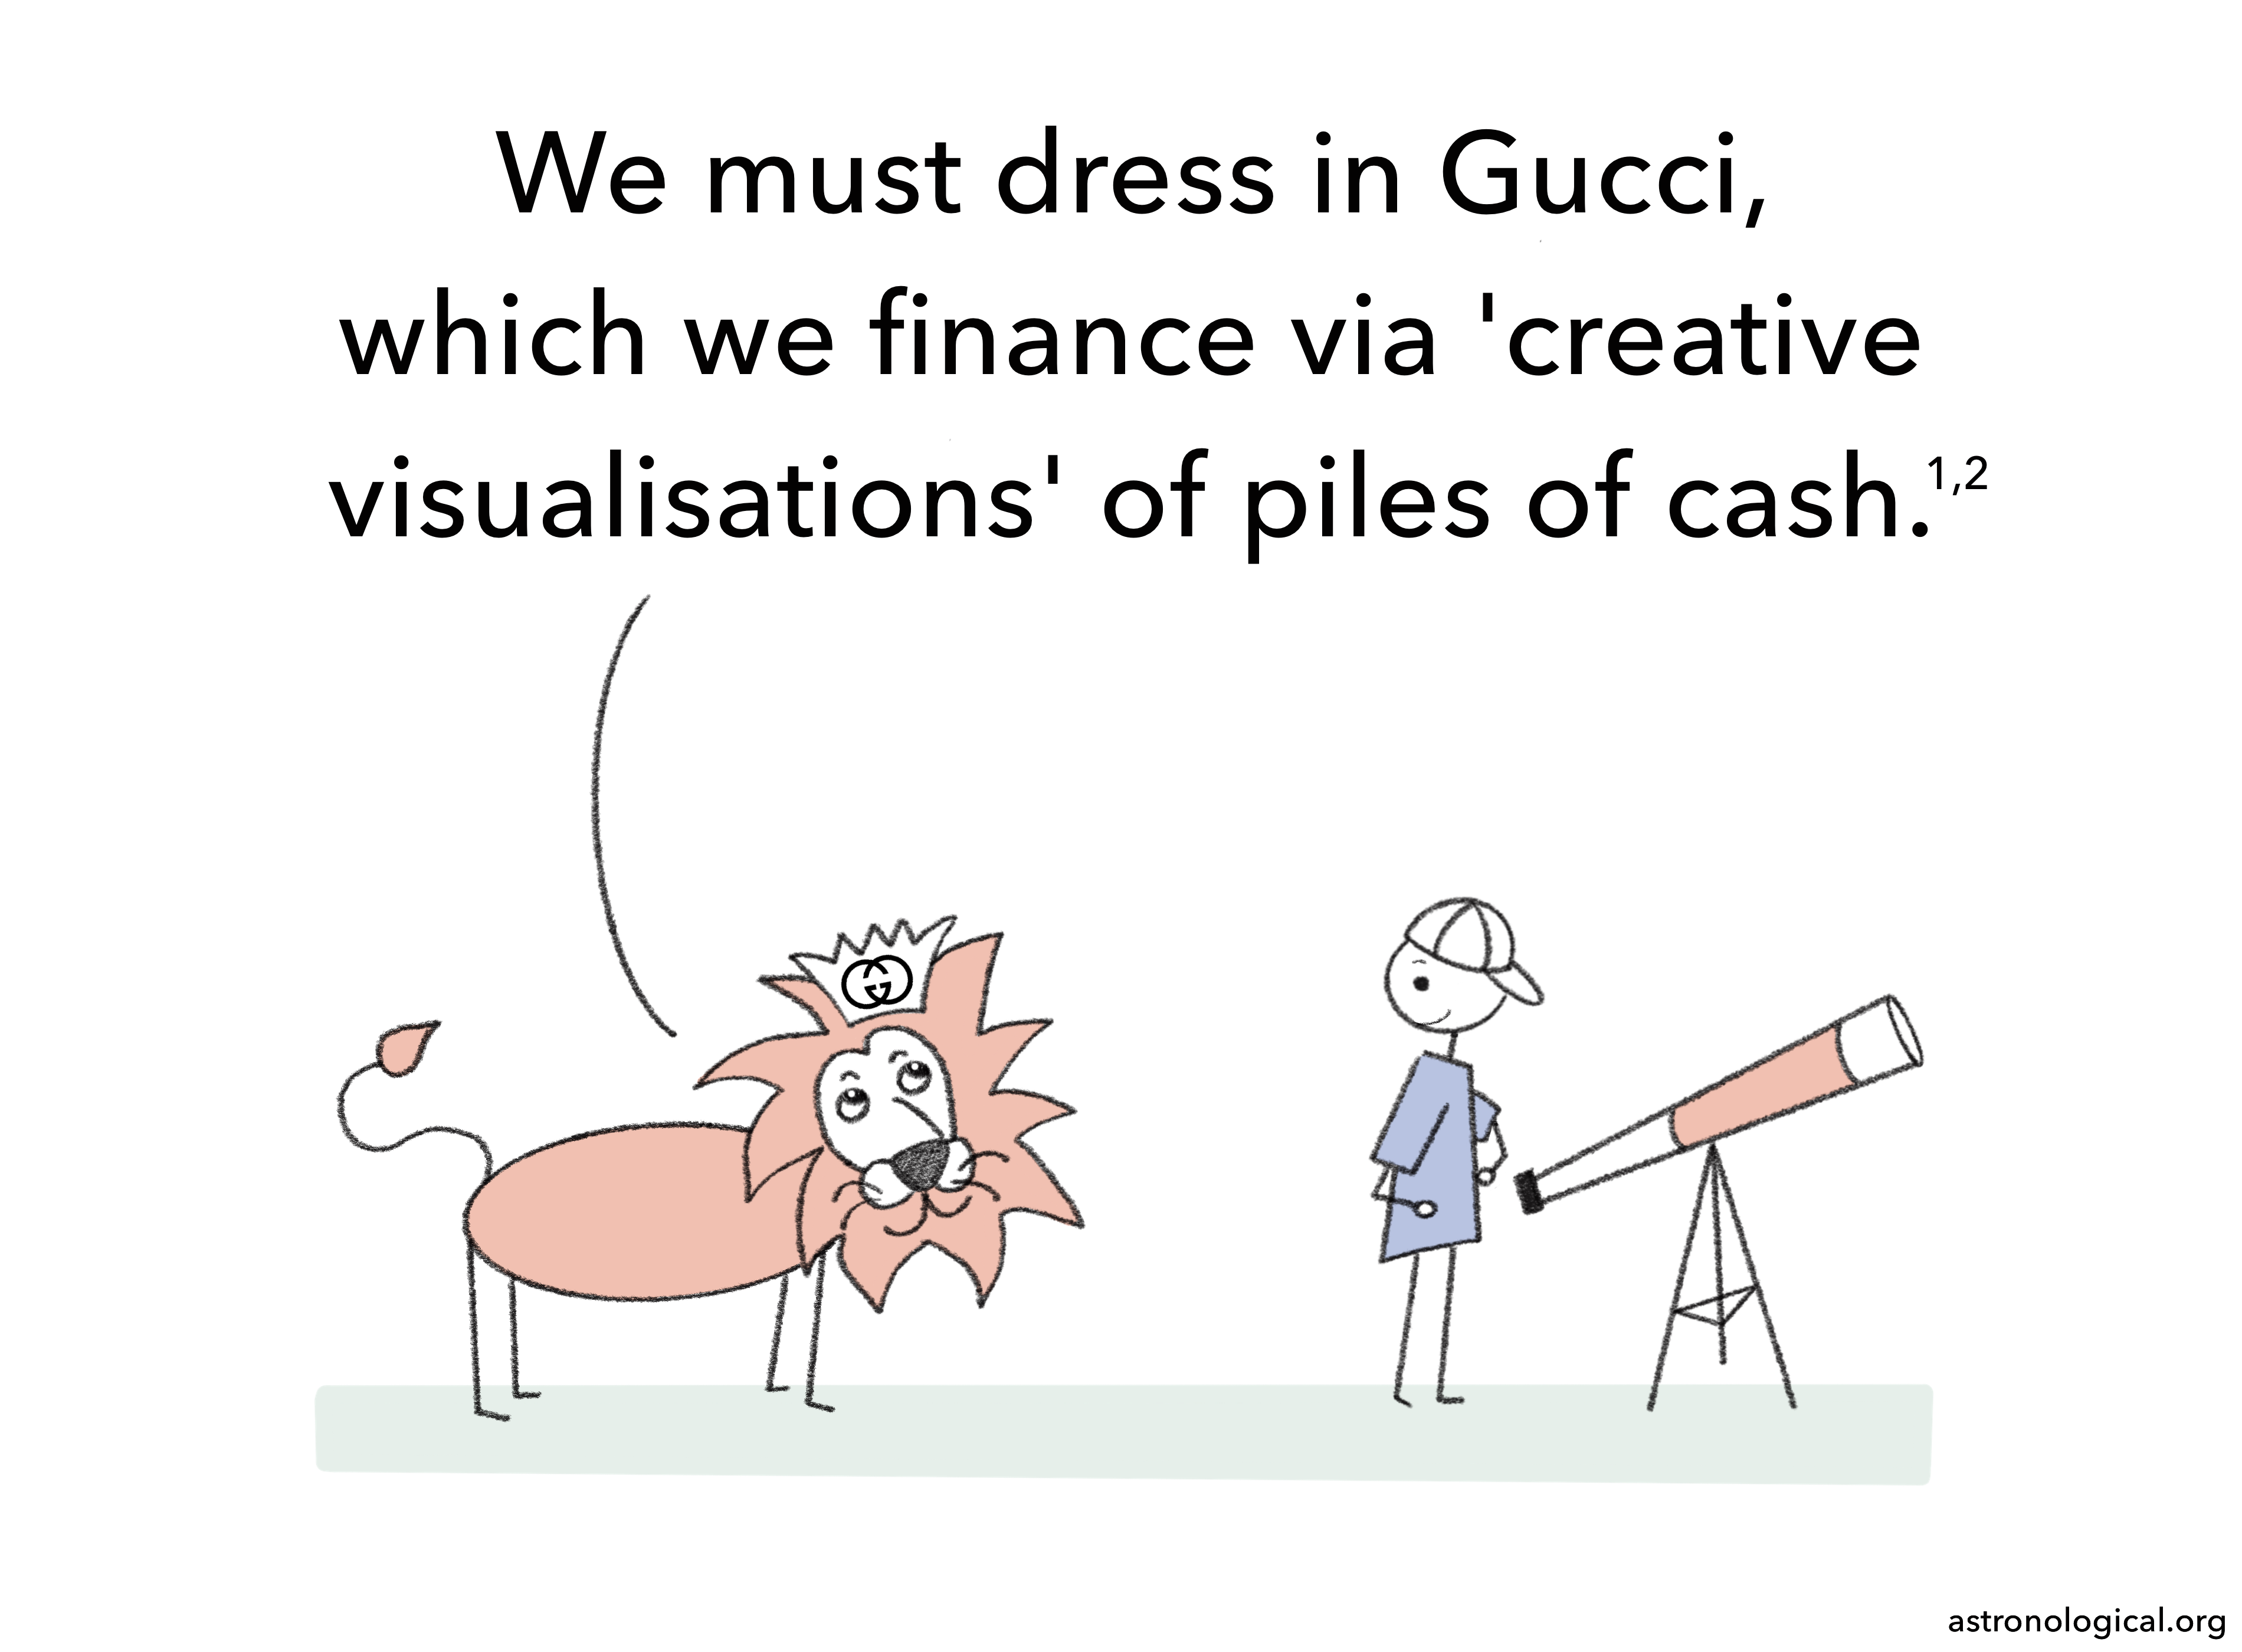 The lion continues: We must dress in Gucci, which we finance via creative visualisations of piles of cash. The scientist has raised eyebrows and has turned away from his telescope.